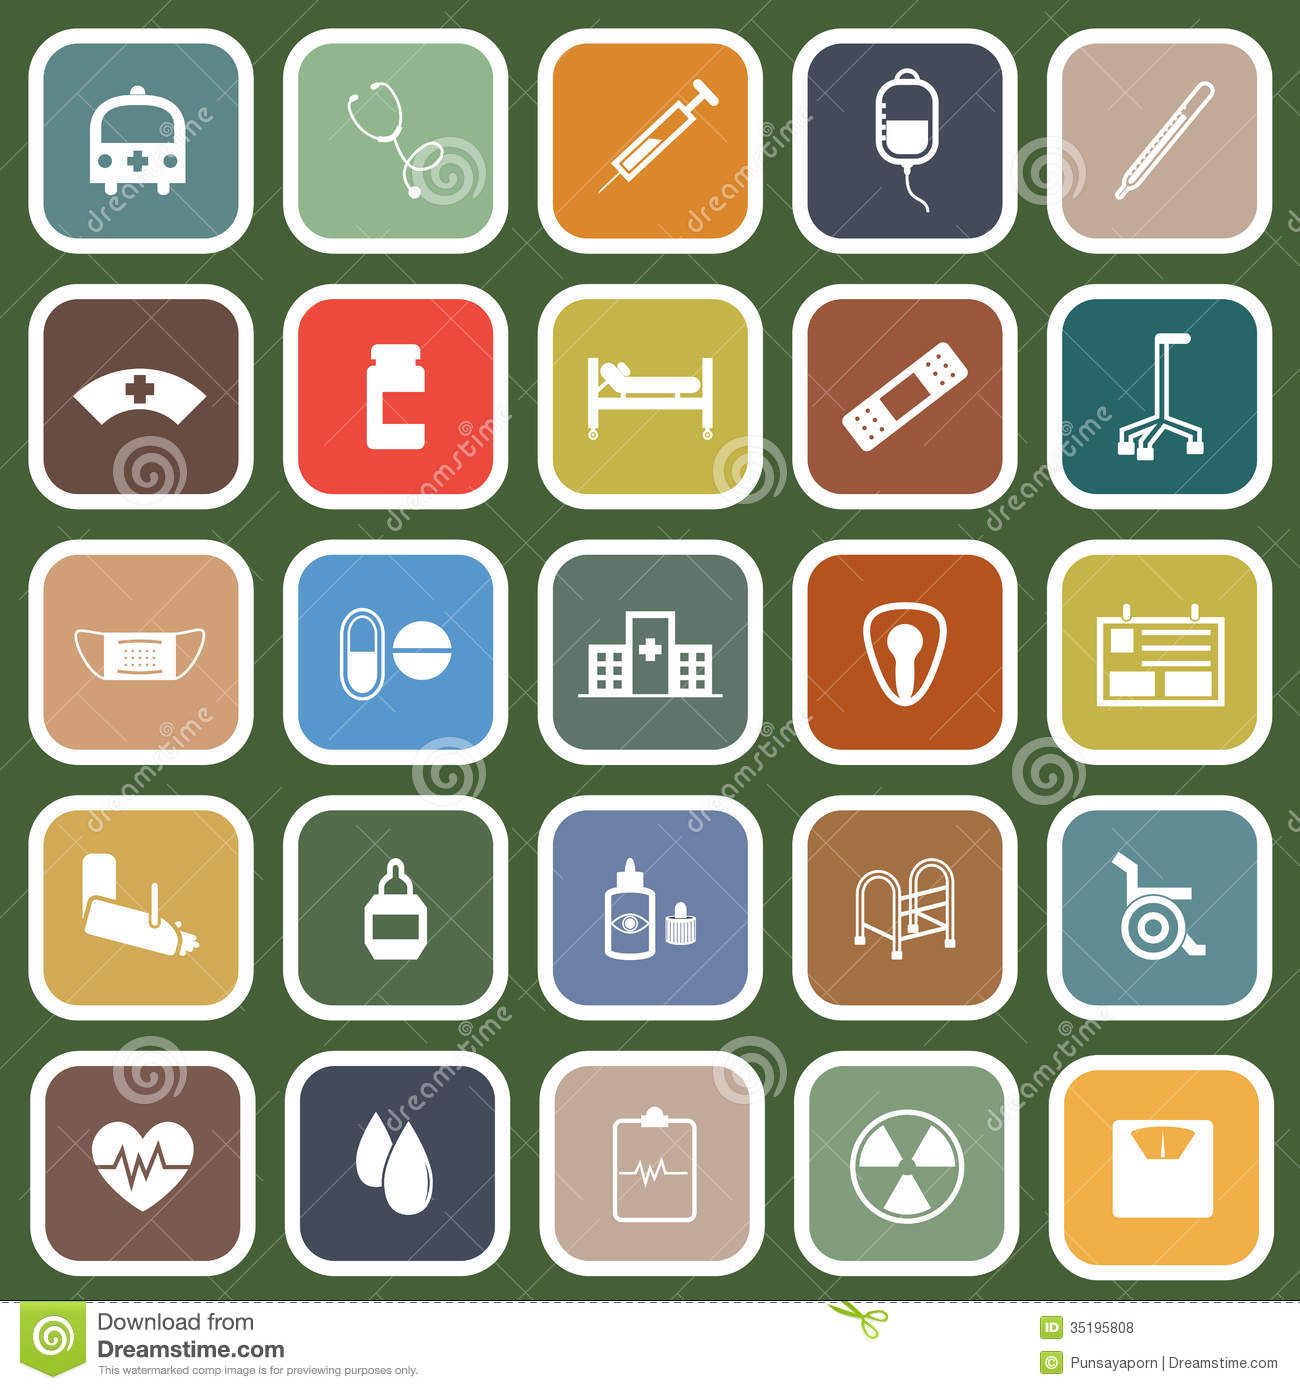 Hospital Flat Icons On Green Background Royalty Free Stock Photos ...